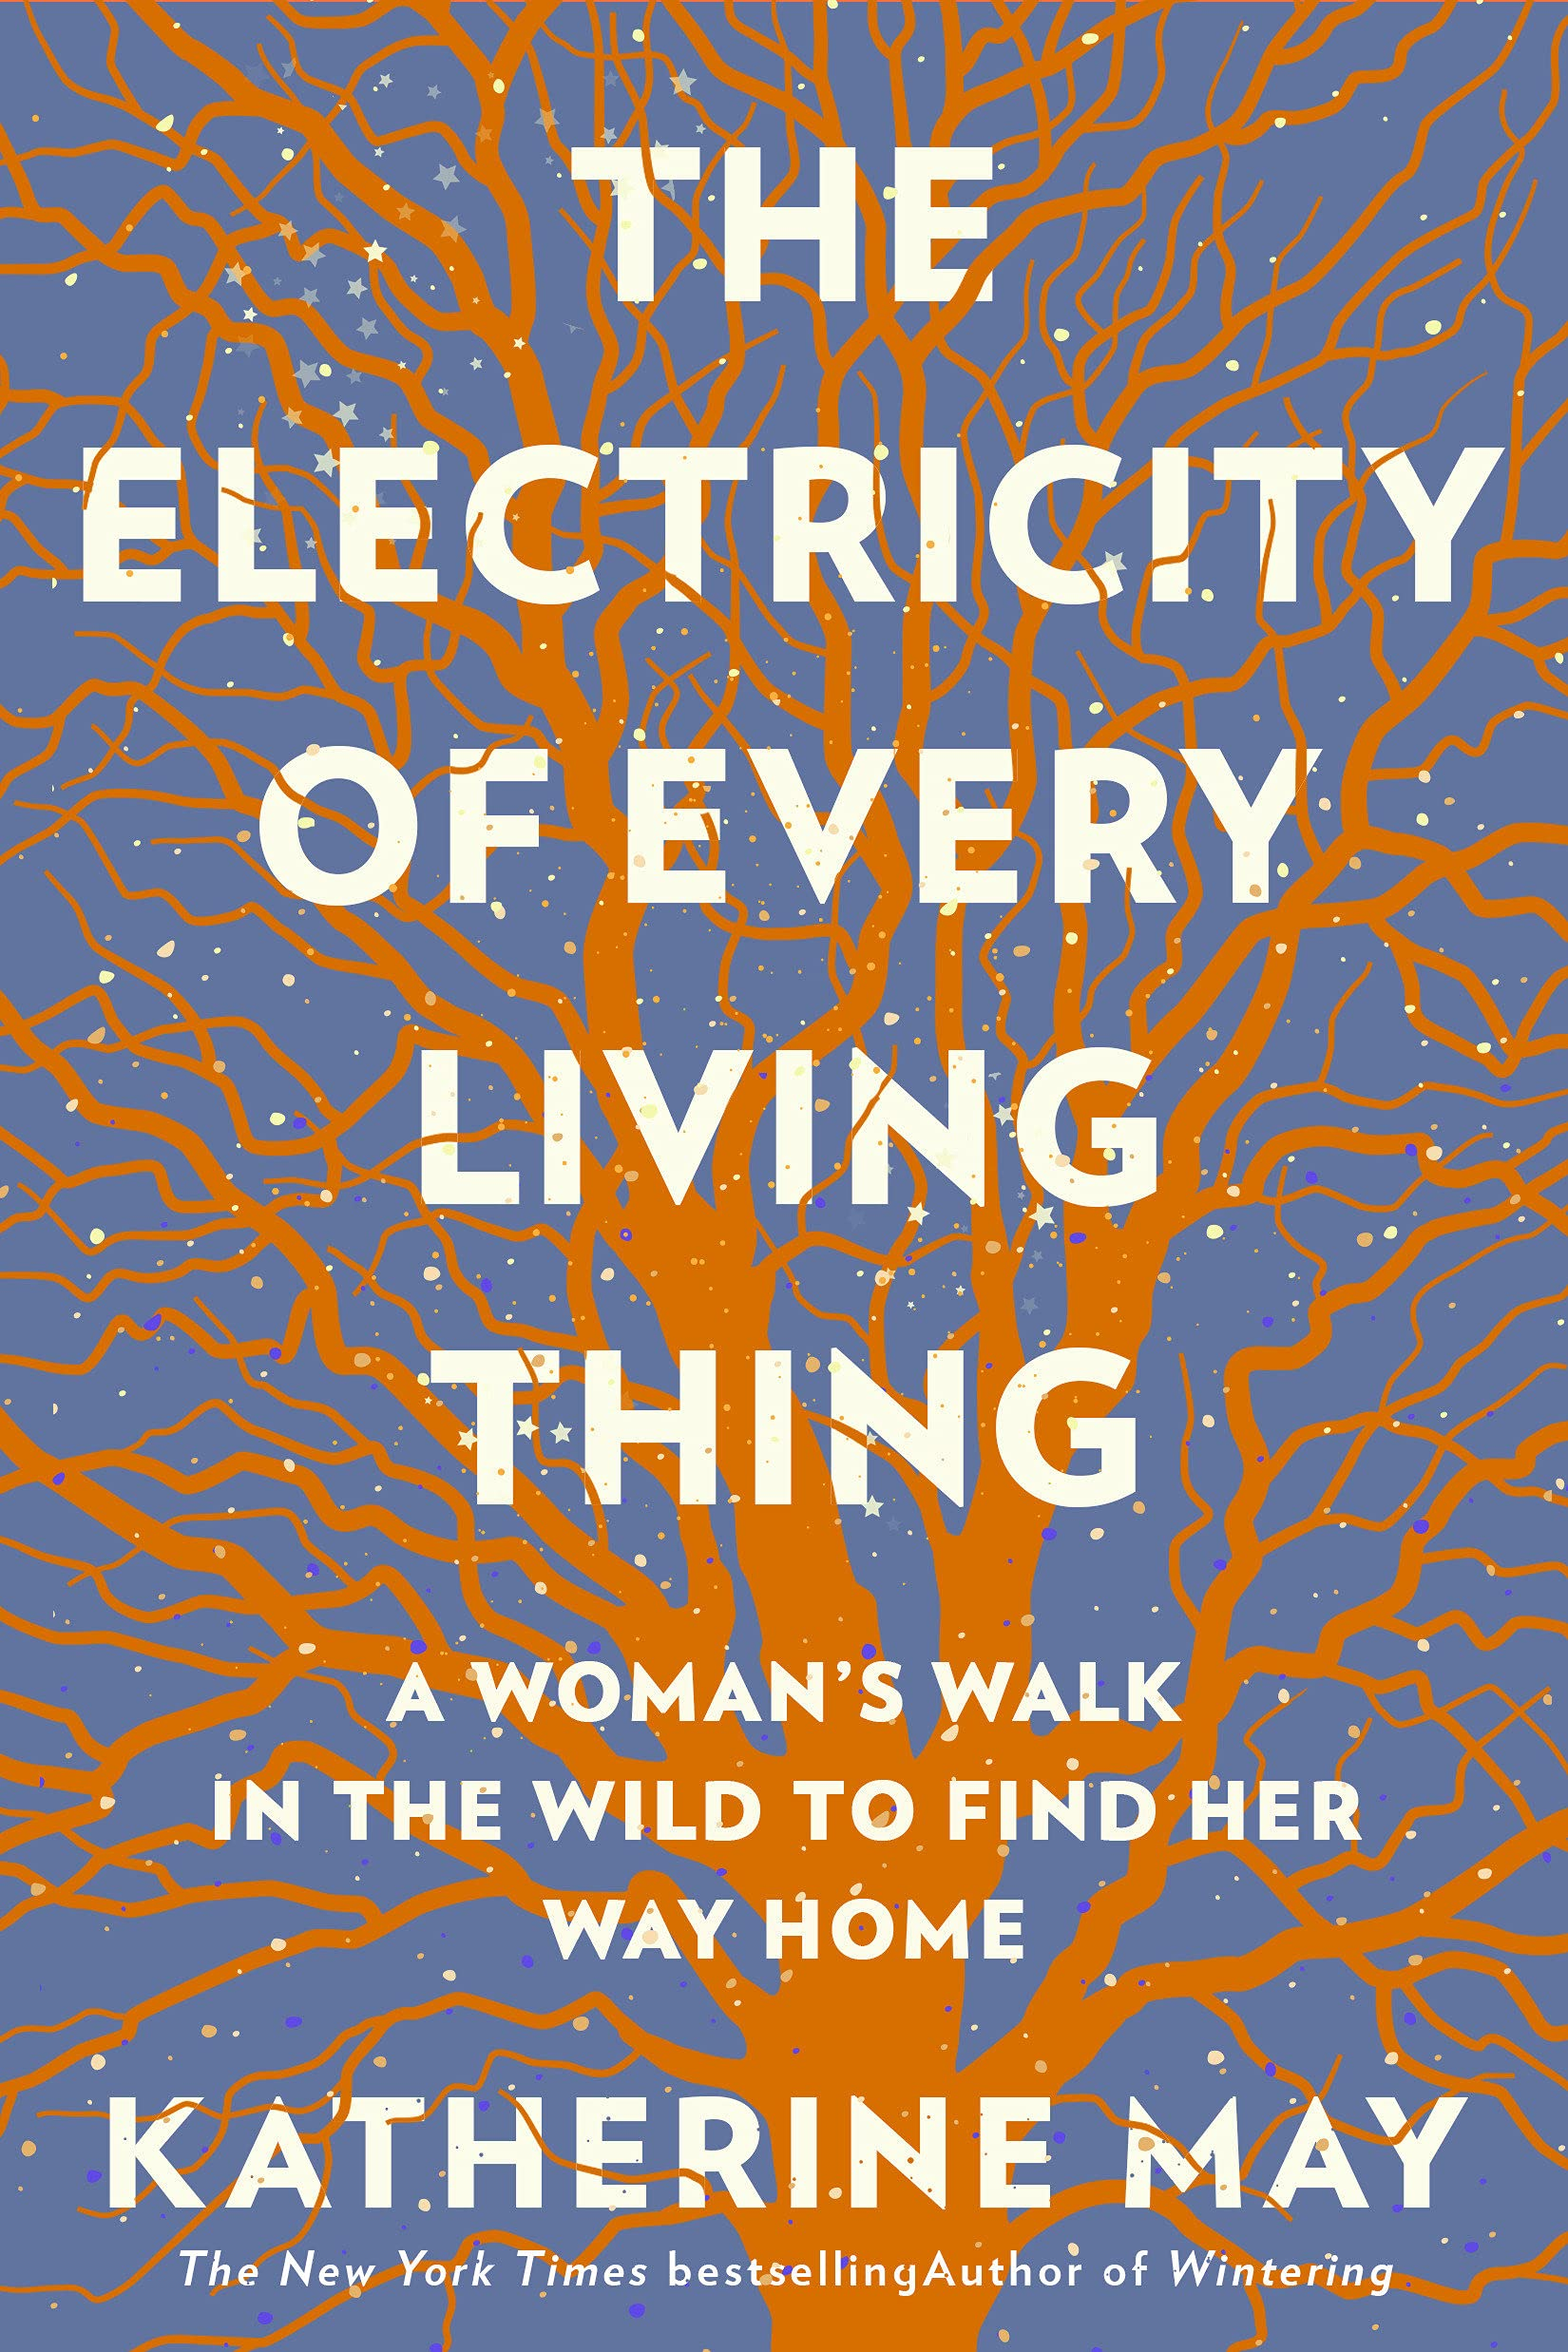 THE ELECTRICITY OF EVERY LIVING THING A WOMAN'S WALK IN THE WILD TO FIND HER WAY HOME KATHERINE MAY